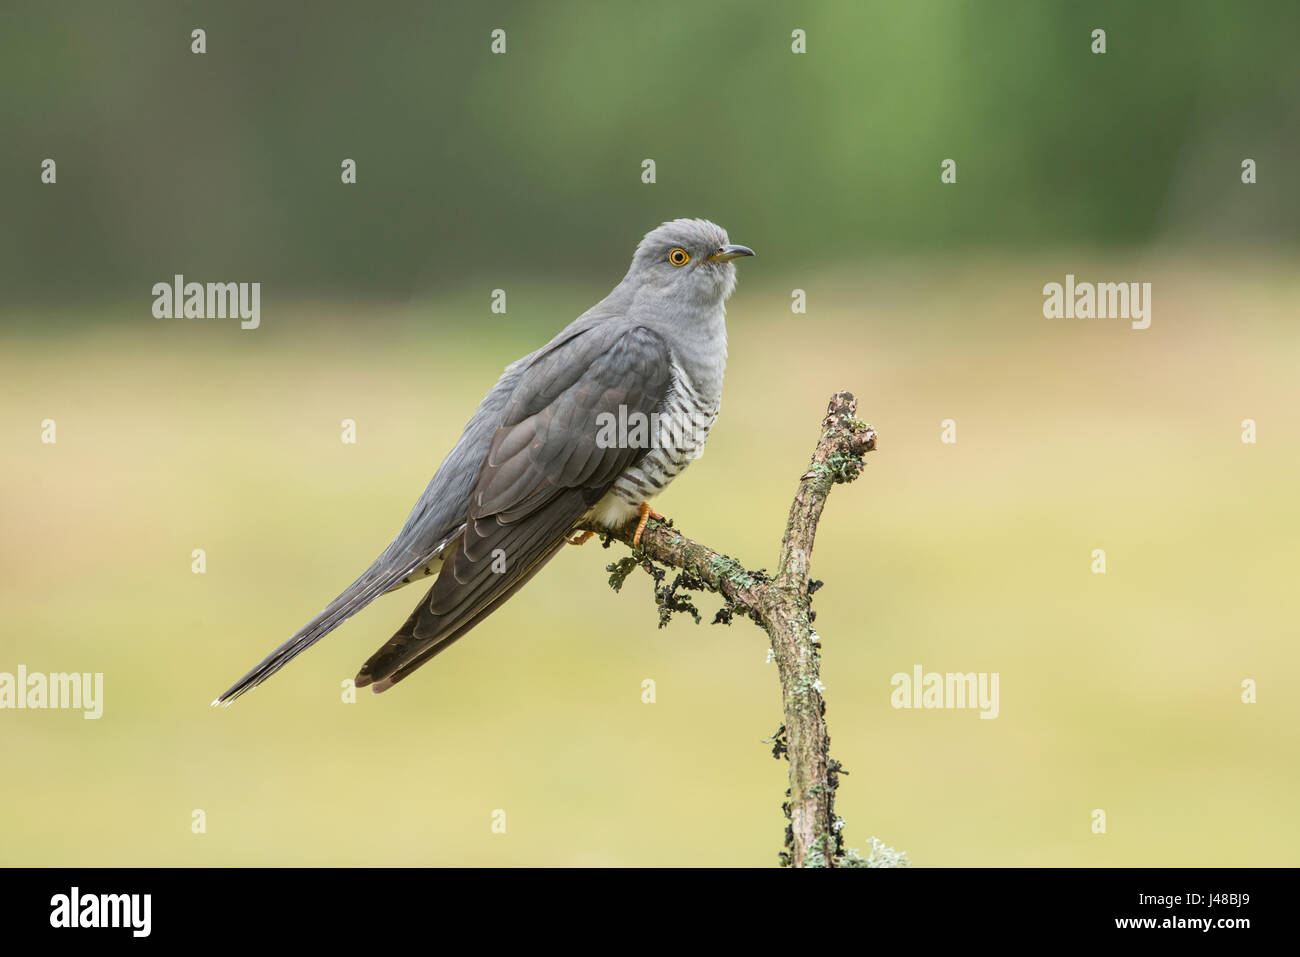 Cuckoo (Cuculus canorus), variously known as Common, European or Eurasian cuckoo. - Stock Image